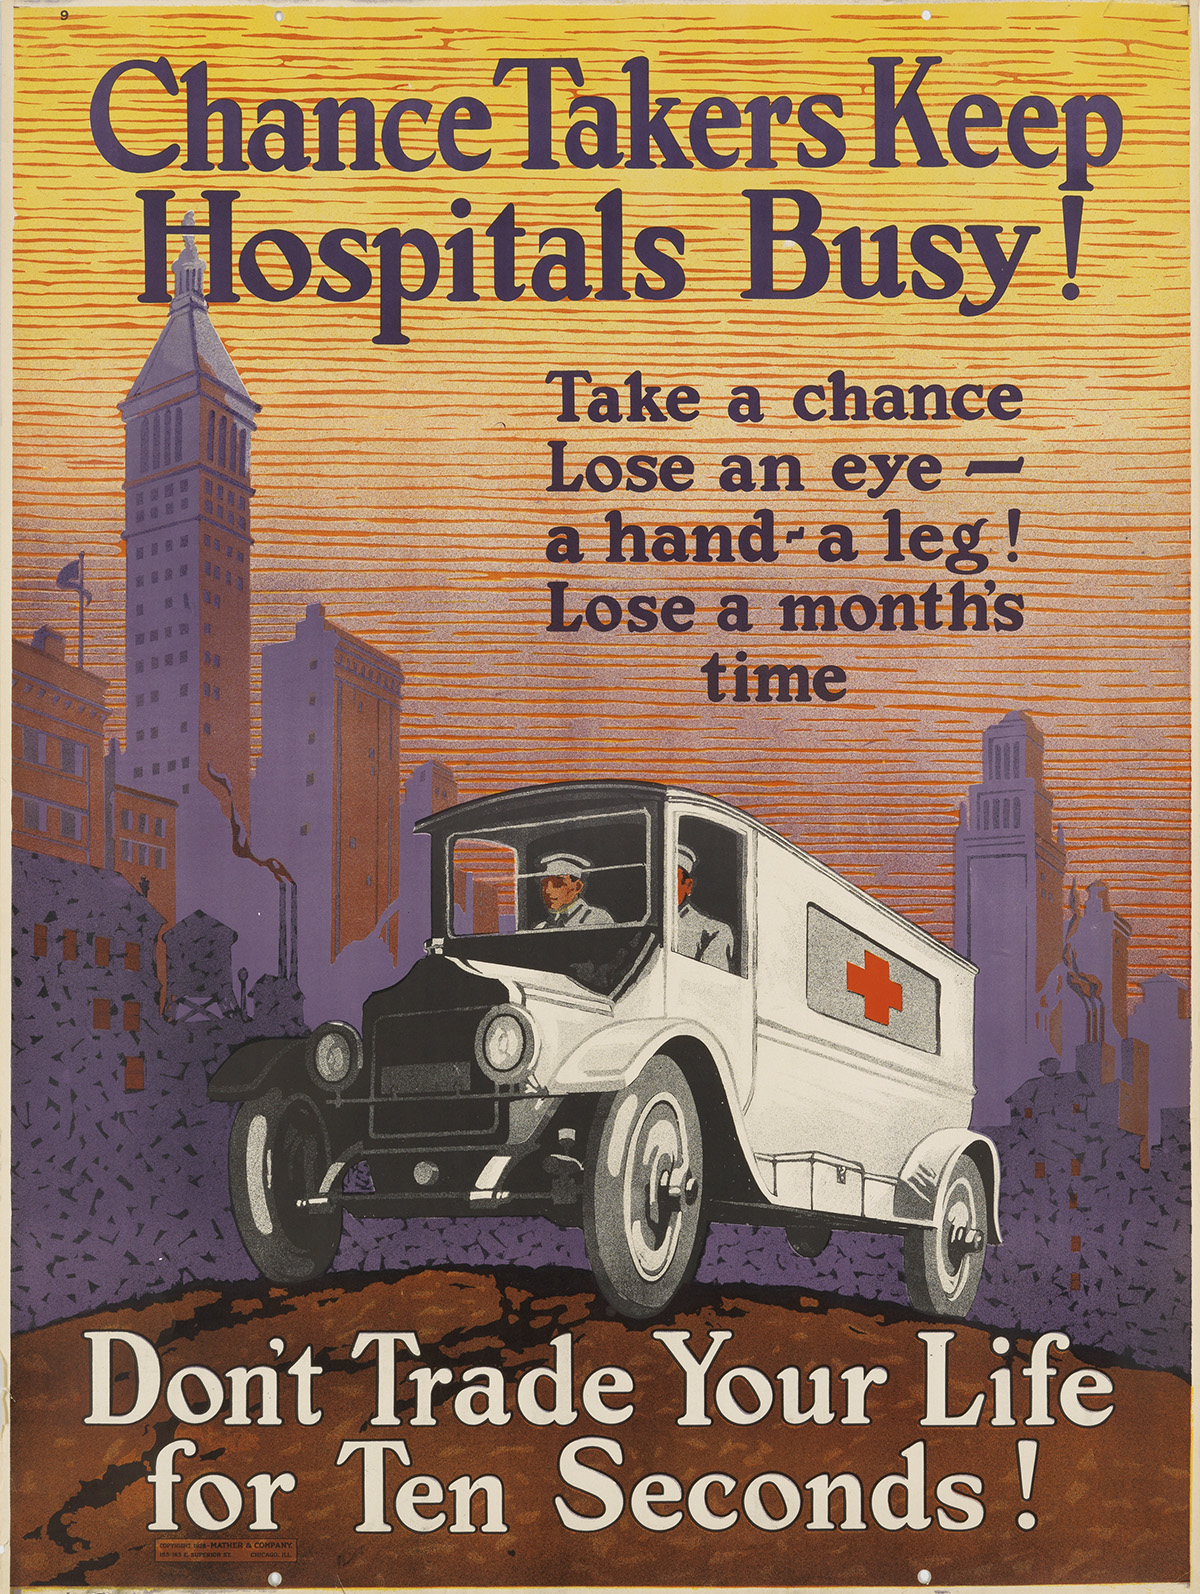 DESIGNER-UNKNOWN-CHANCE-TAKERS-KEEP-HOSPITALS-BUSY--DONT-TRADE-YOUR-LIFE-FOR-TEN-SECONDS-1925-48x36-inches-122x91-cm-Mather--C